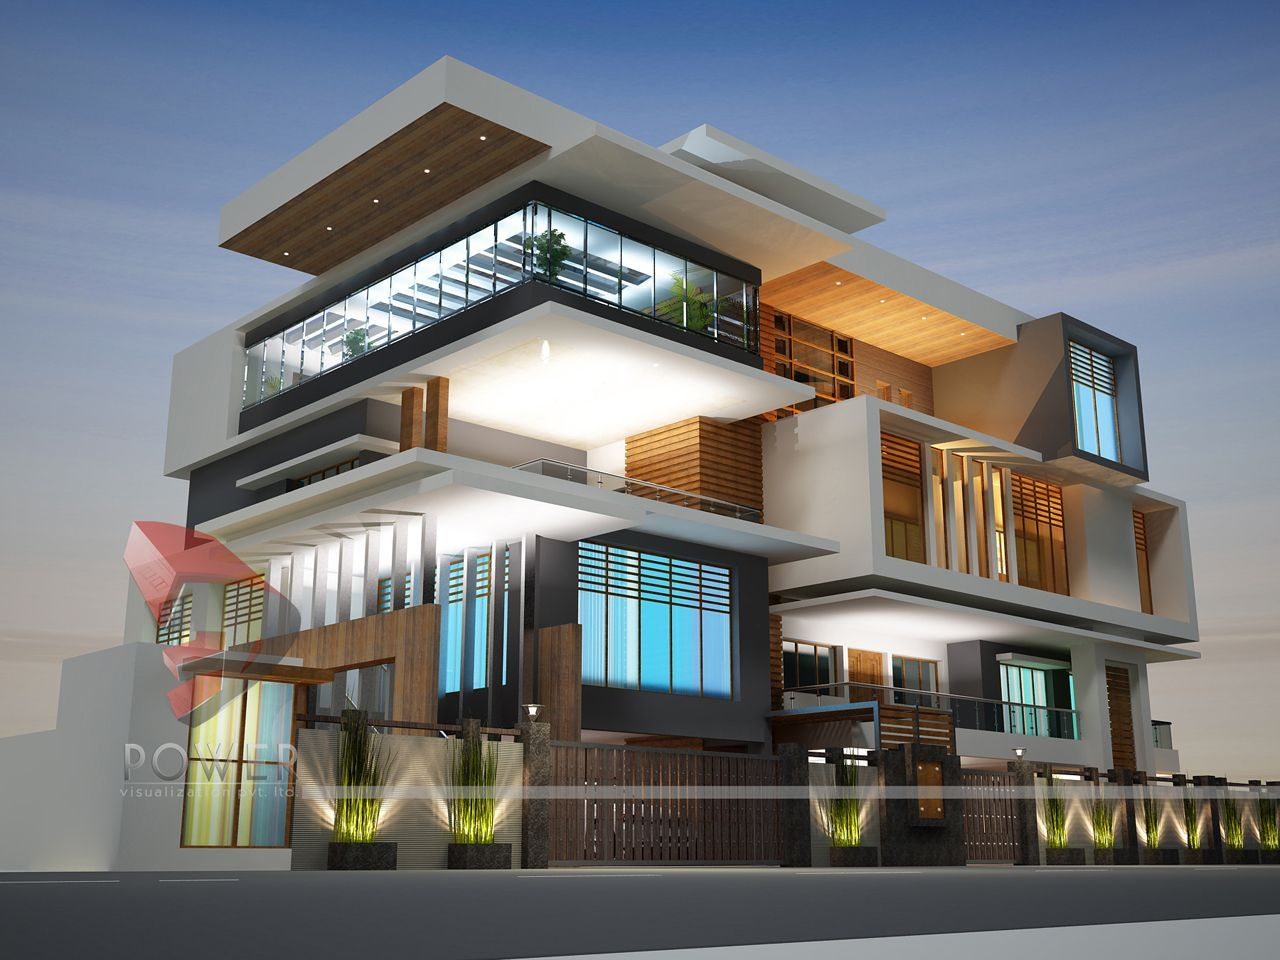 Modern house design in india architecture india modern for Indian house design architect